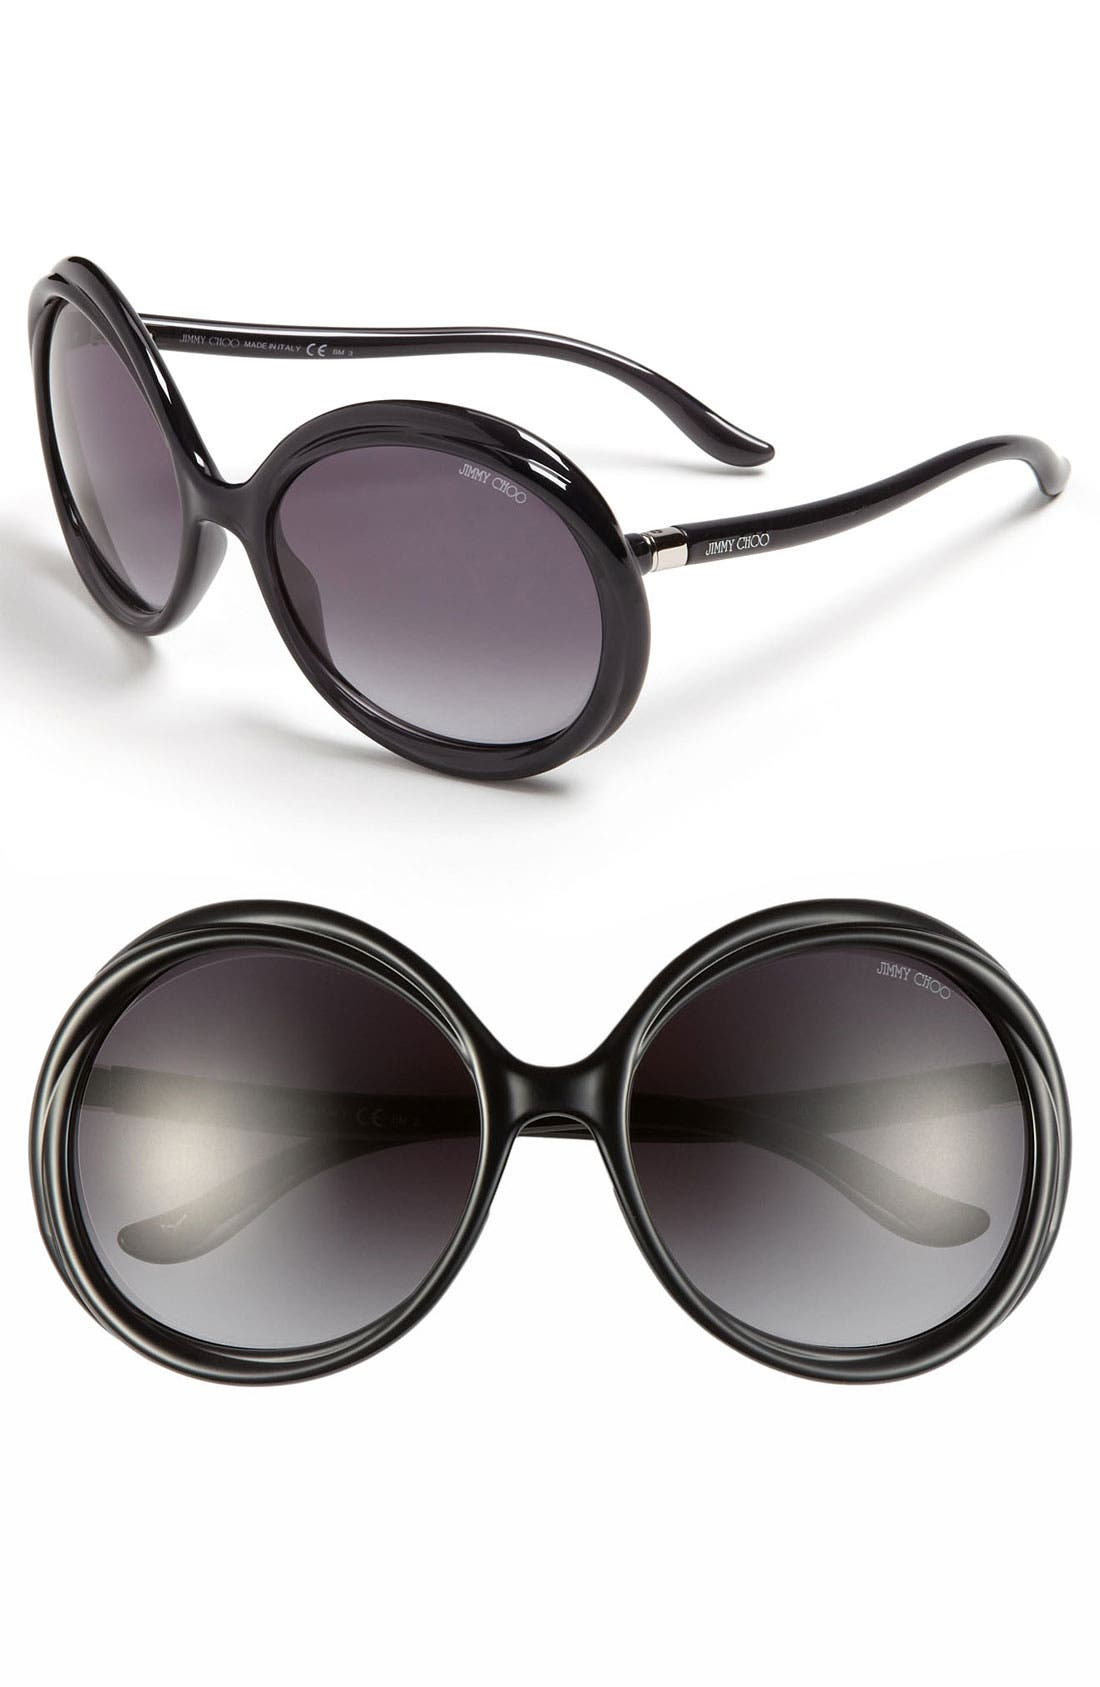 Main Image - Jimmy Choo 'Mindy' 59mm Sunglasses